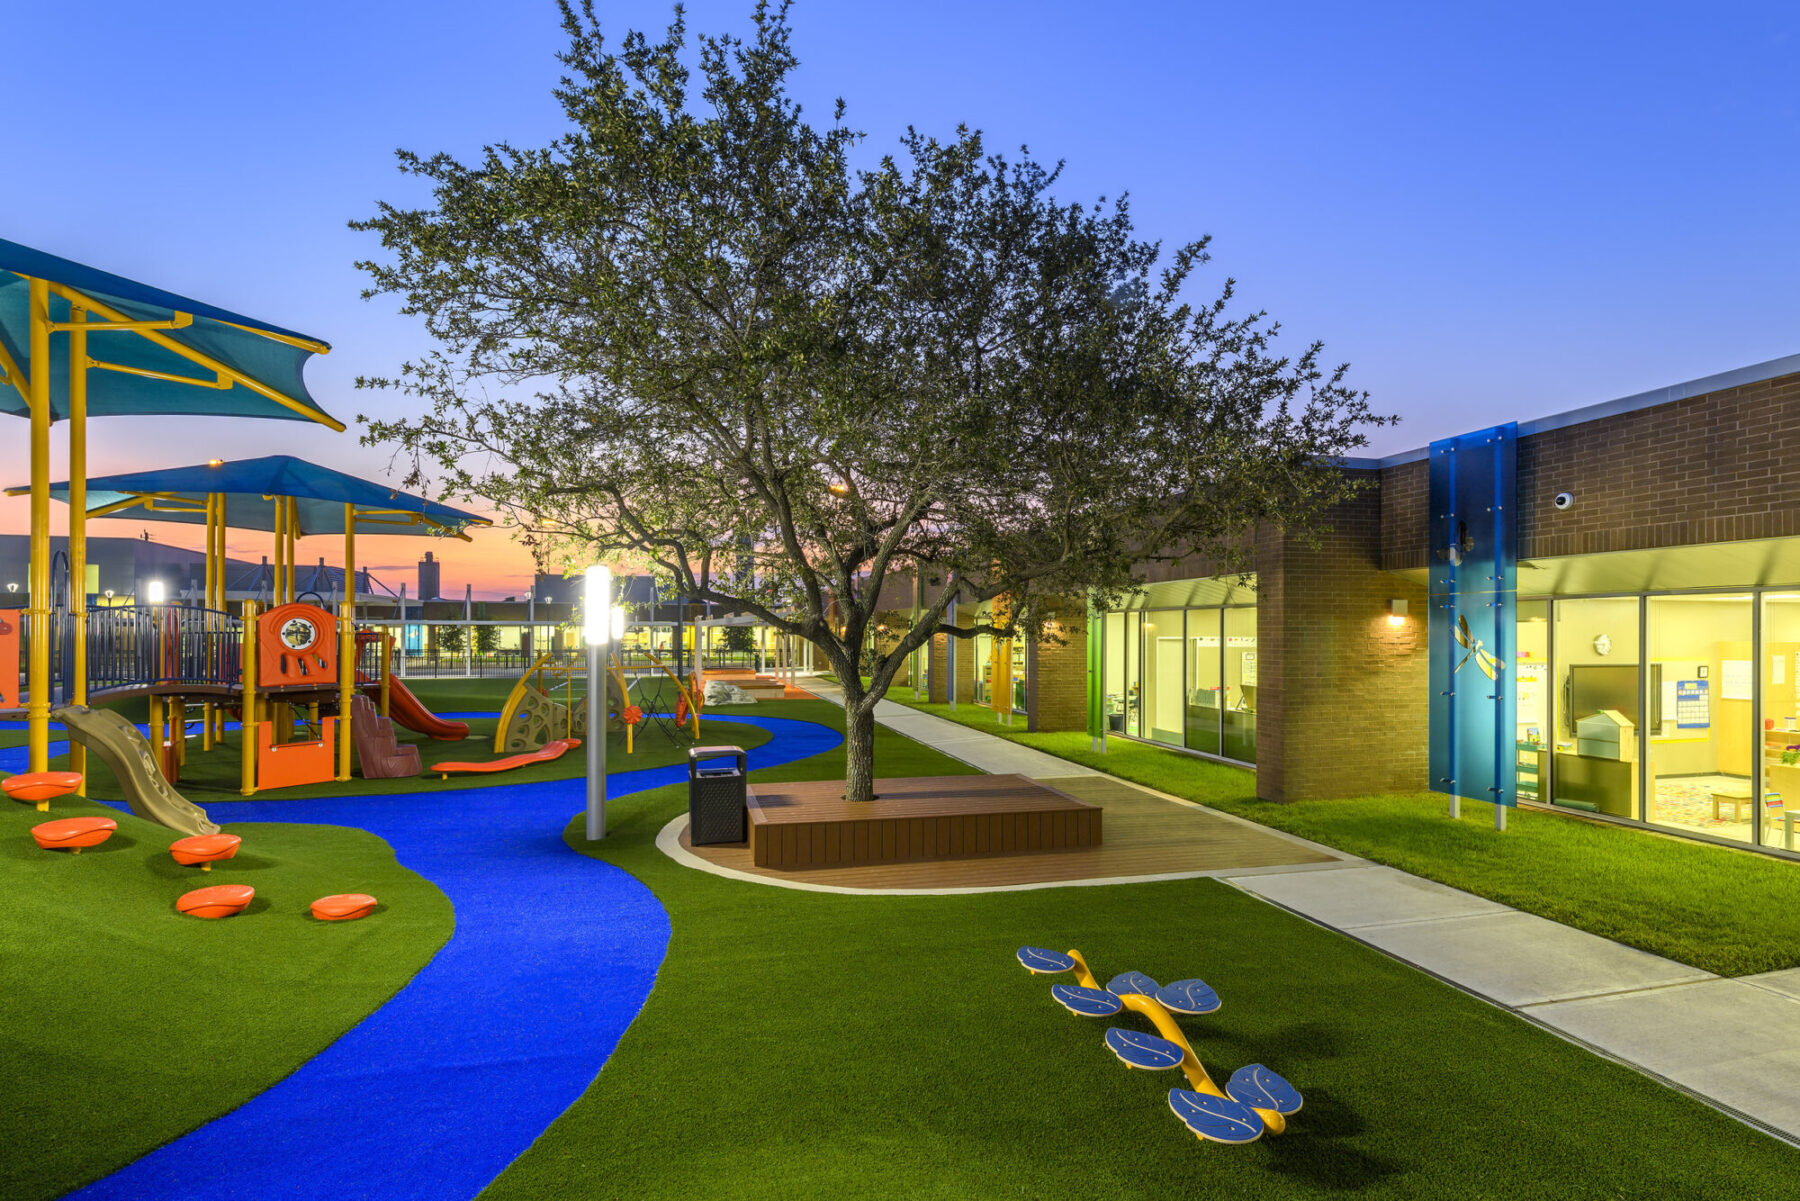 Awaty International School Houston - Early Learning Center - Houston, TX 091417